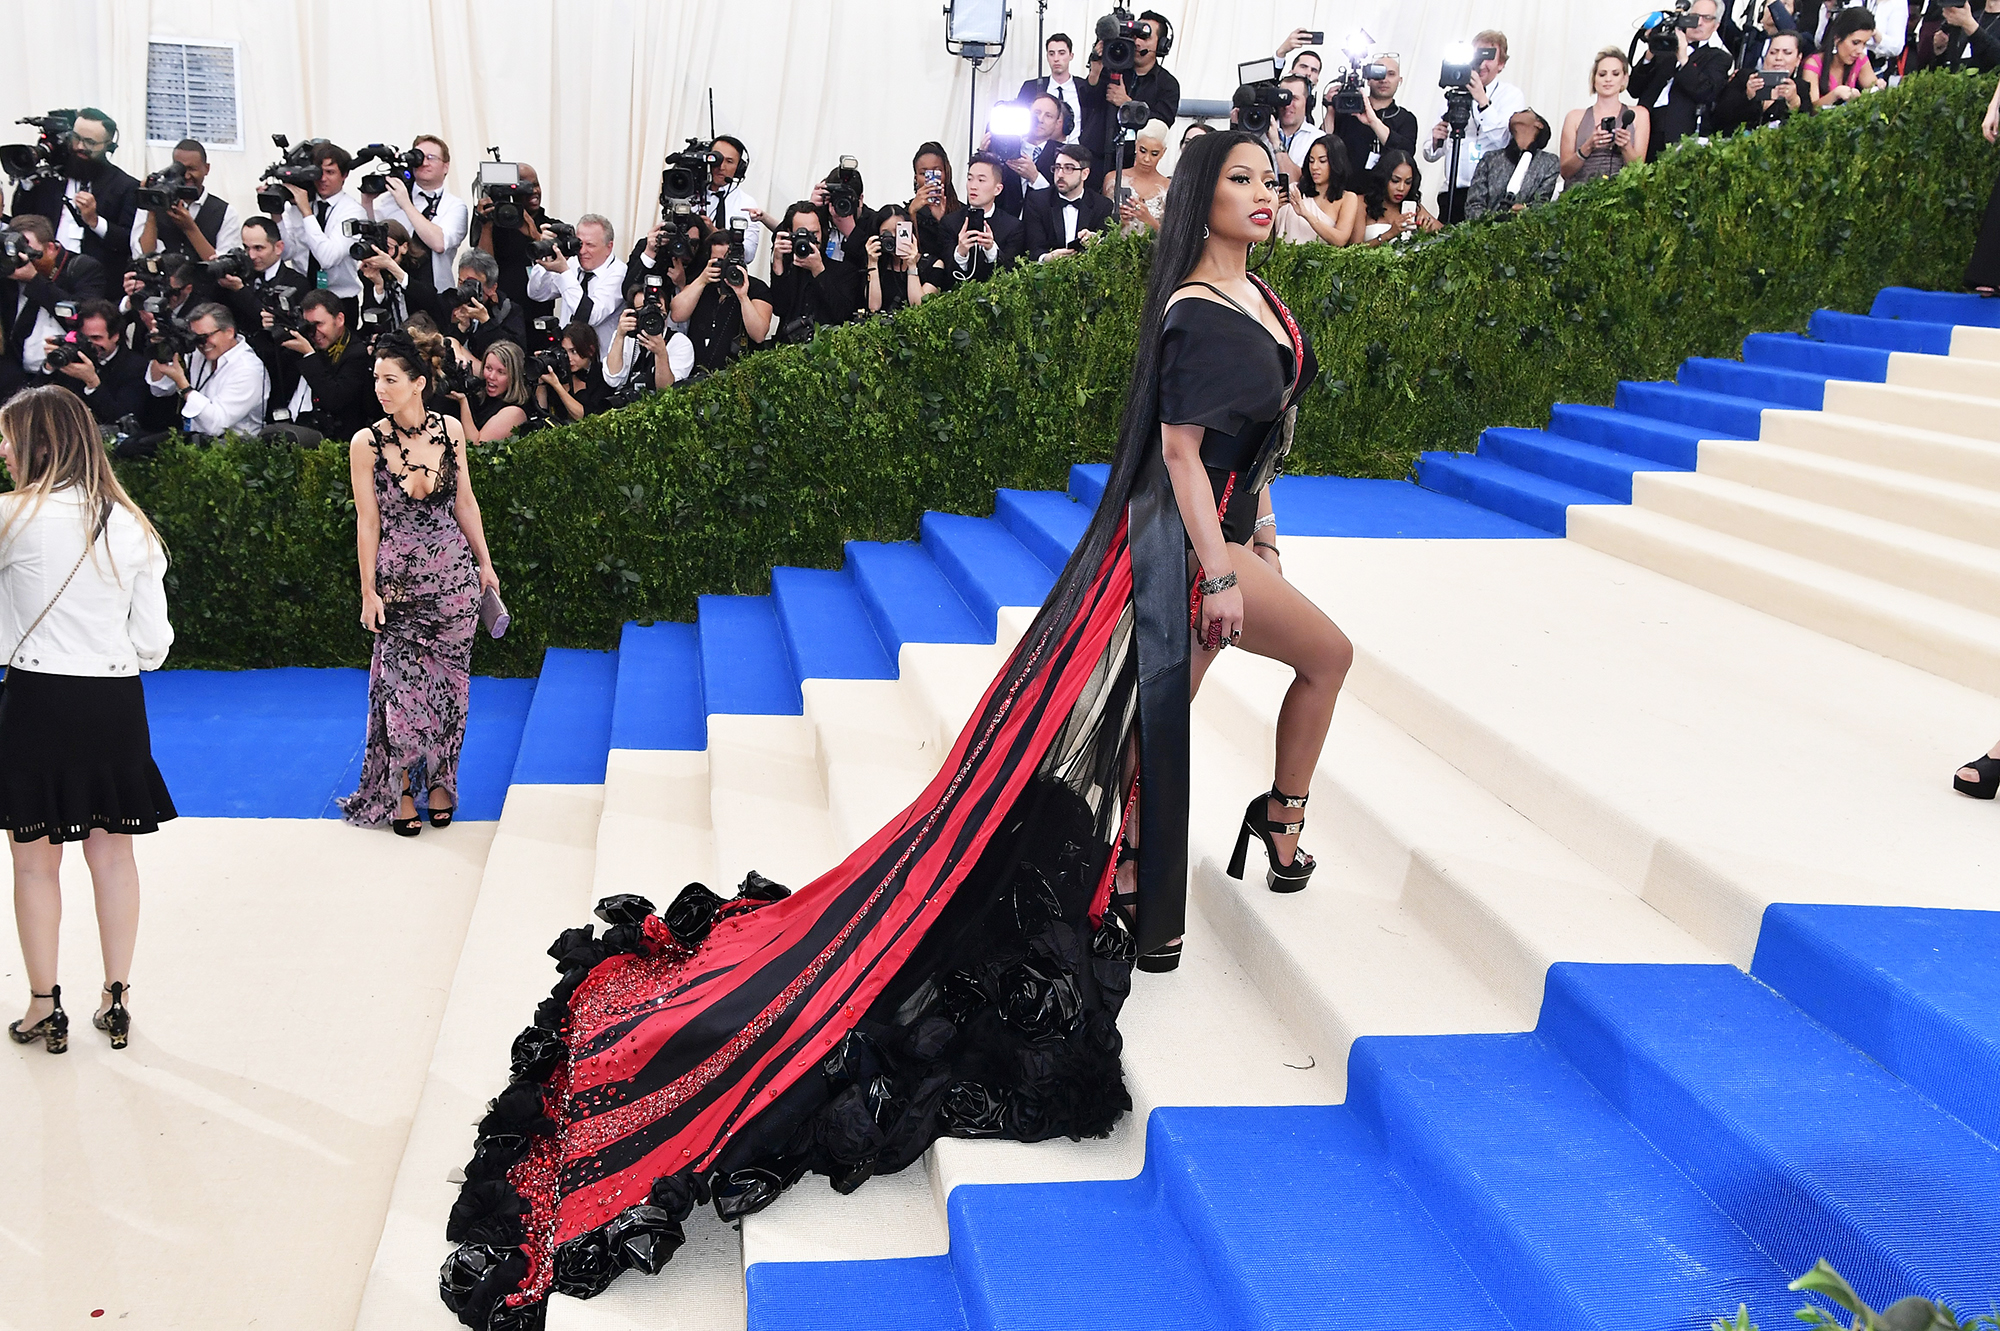 NEW YORK, USA - MAY 01 : Nicki Minaj attends the 'Rei Kawakubo / Comme des Garcons: Art Of The In-Between' Costume Institute Gala 2017 at Metropolitan Museum of Art in New York, United States on May 01, 2017. (Photo by Philip Rock/Anadolu Agency/Getty Images)